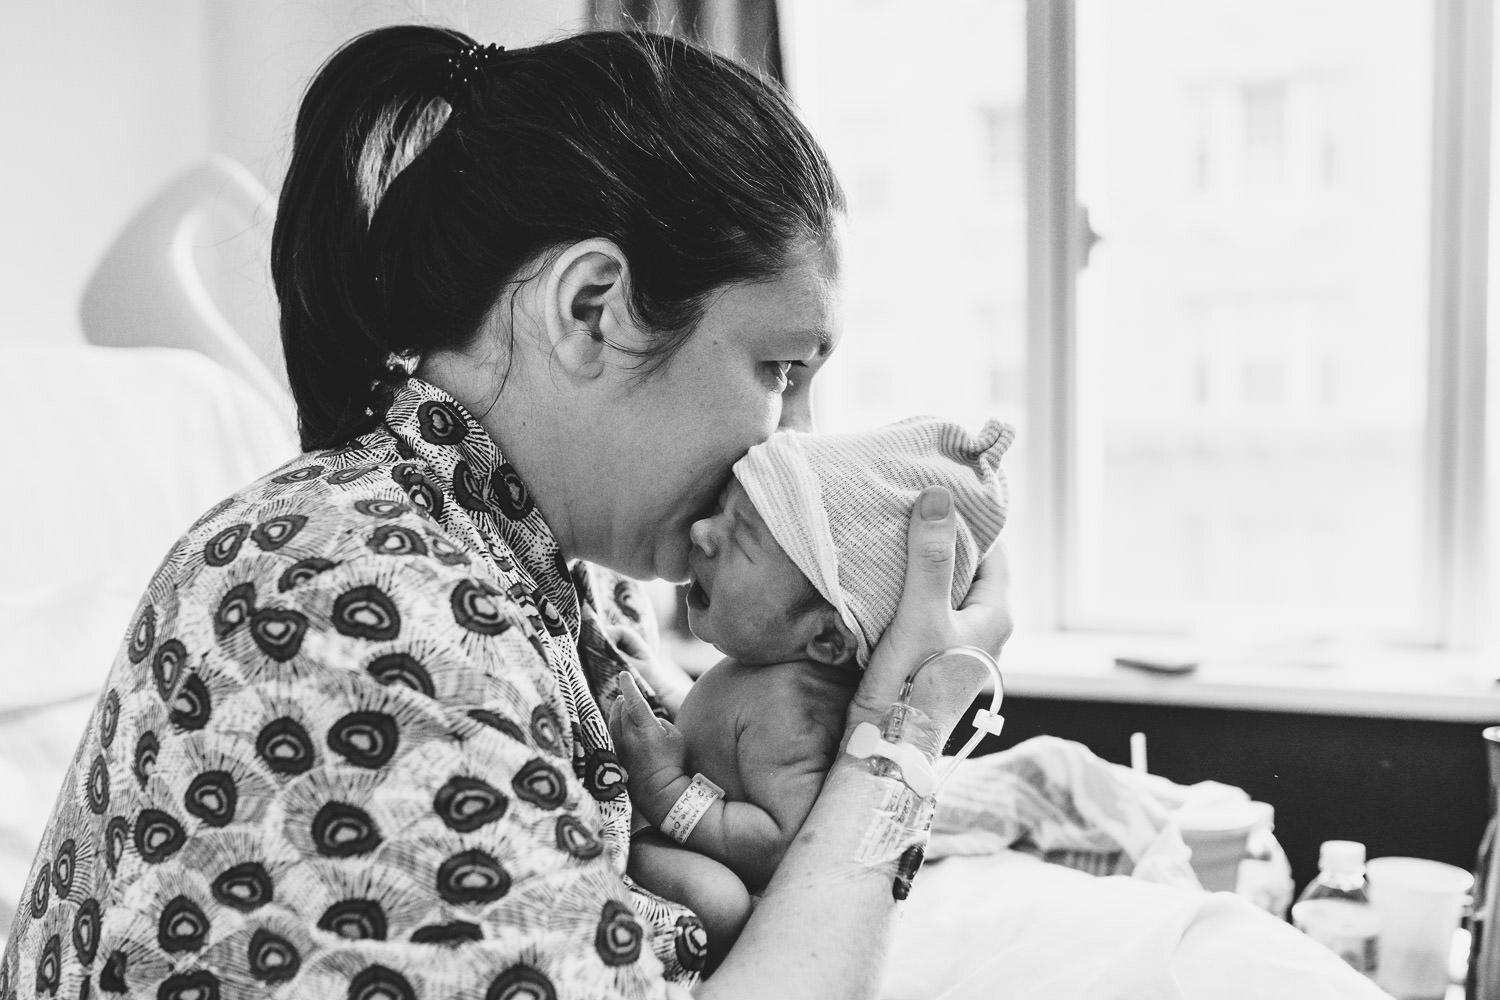 A mother kisses her newborn baby in her hospital bed.